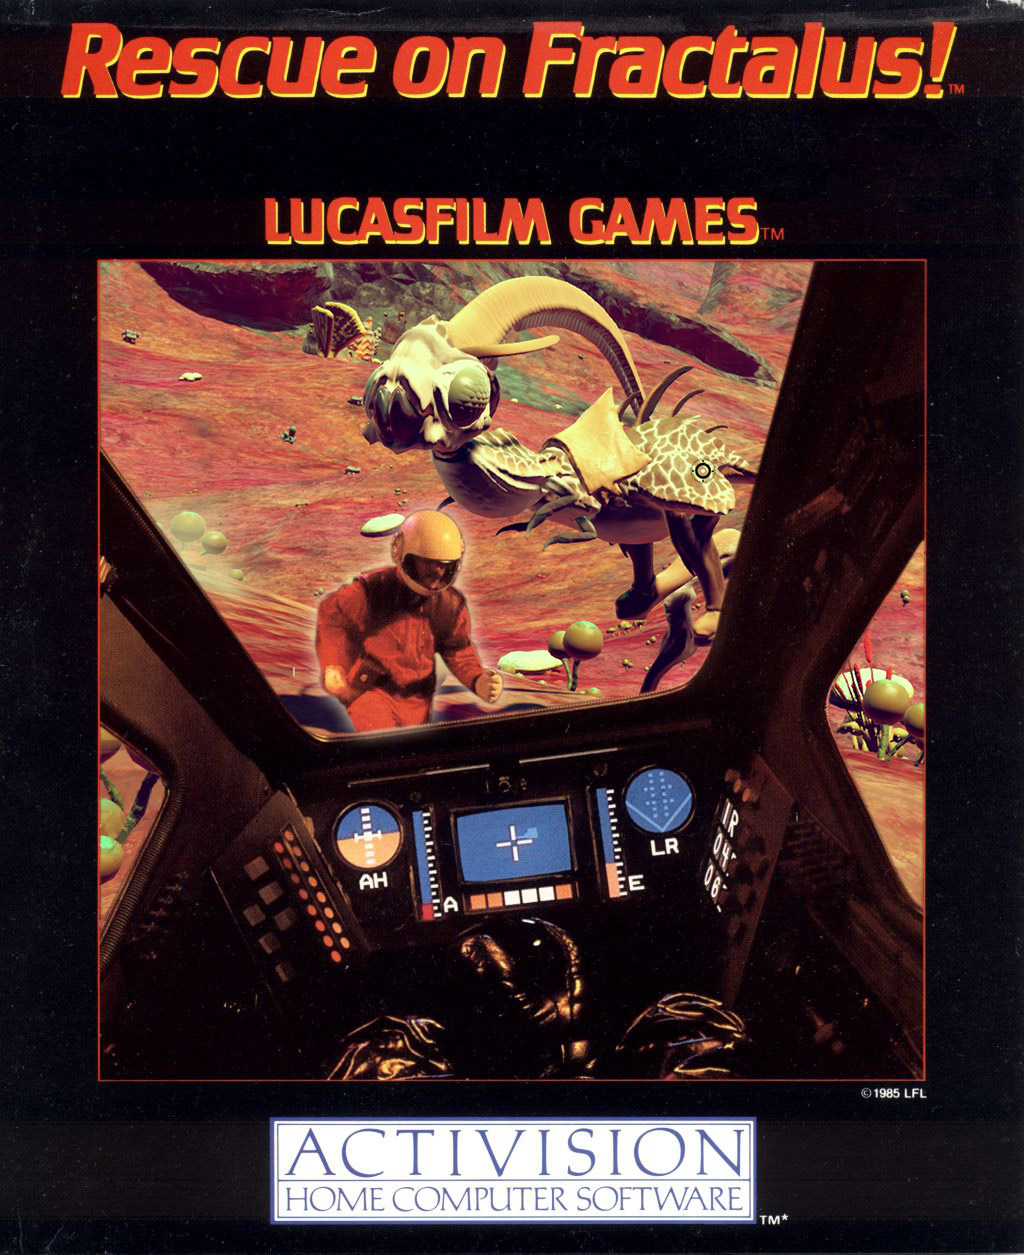 Doctored 'Rescue on Fractalus' game box cover